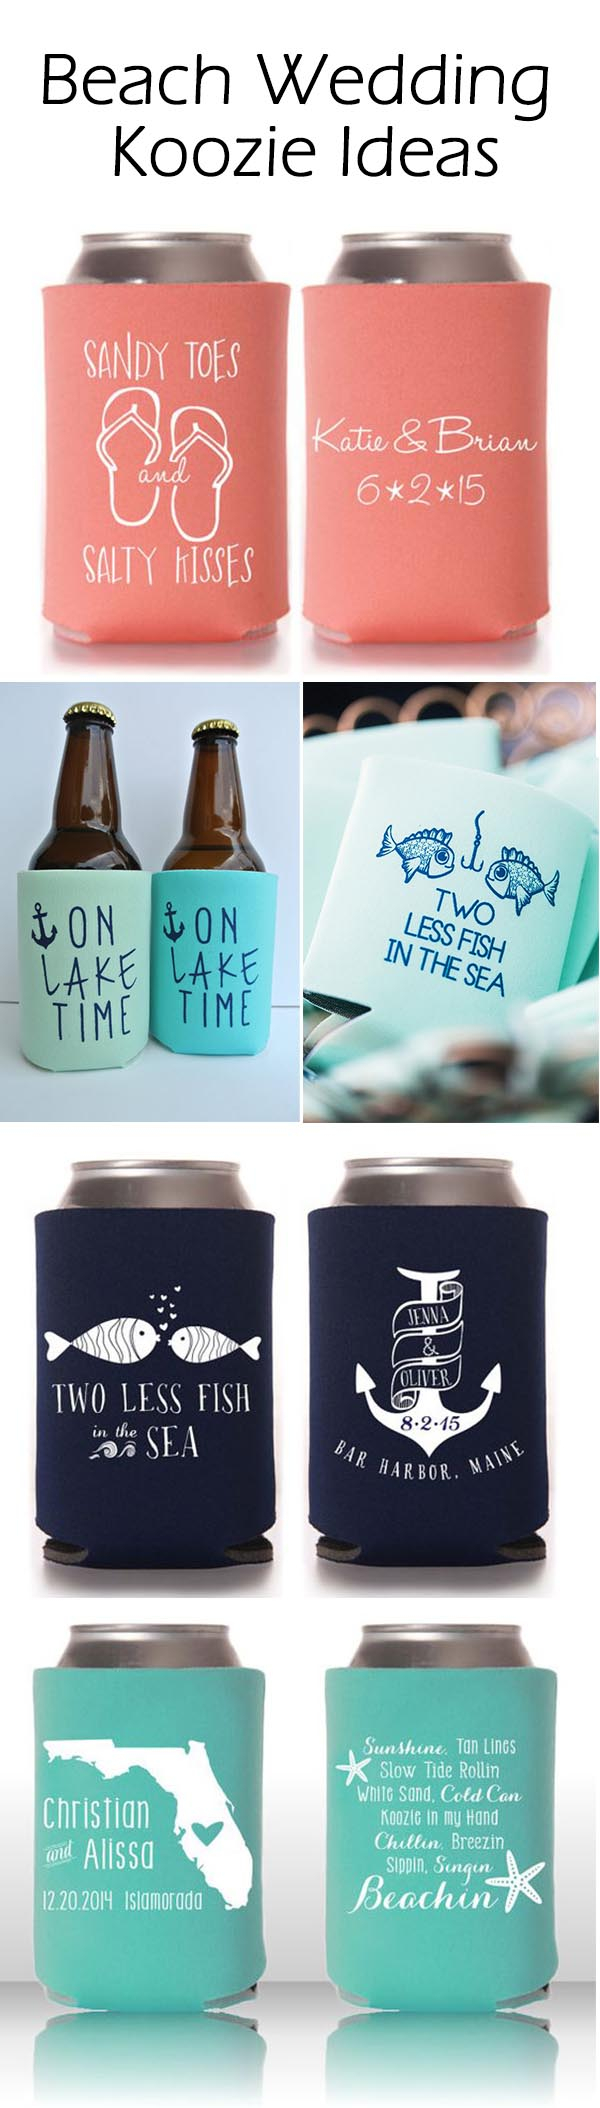 Wedding Koozie Ideas Cool Summer Wedding Ideas With Personalized Koozie Favors